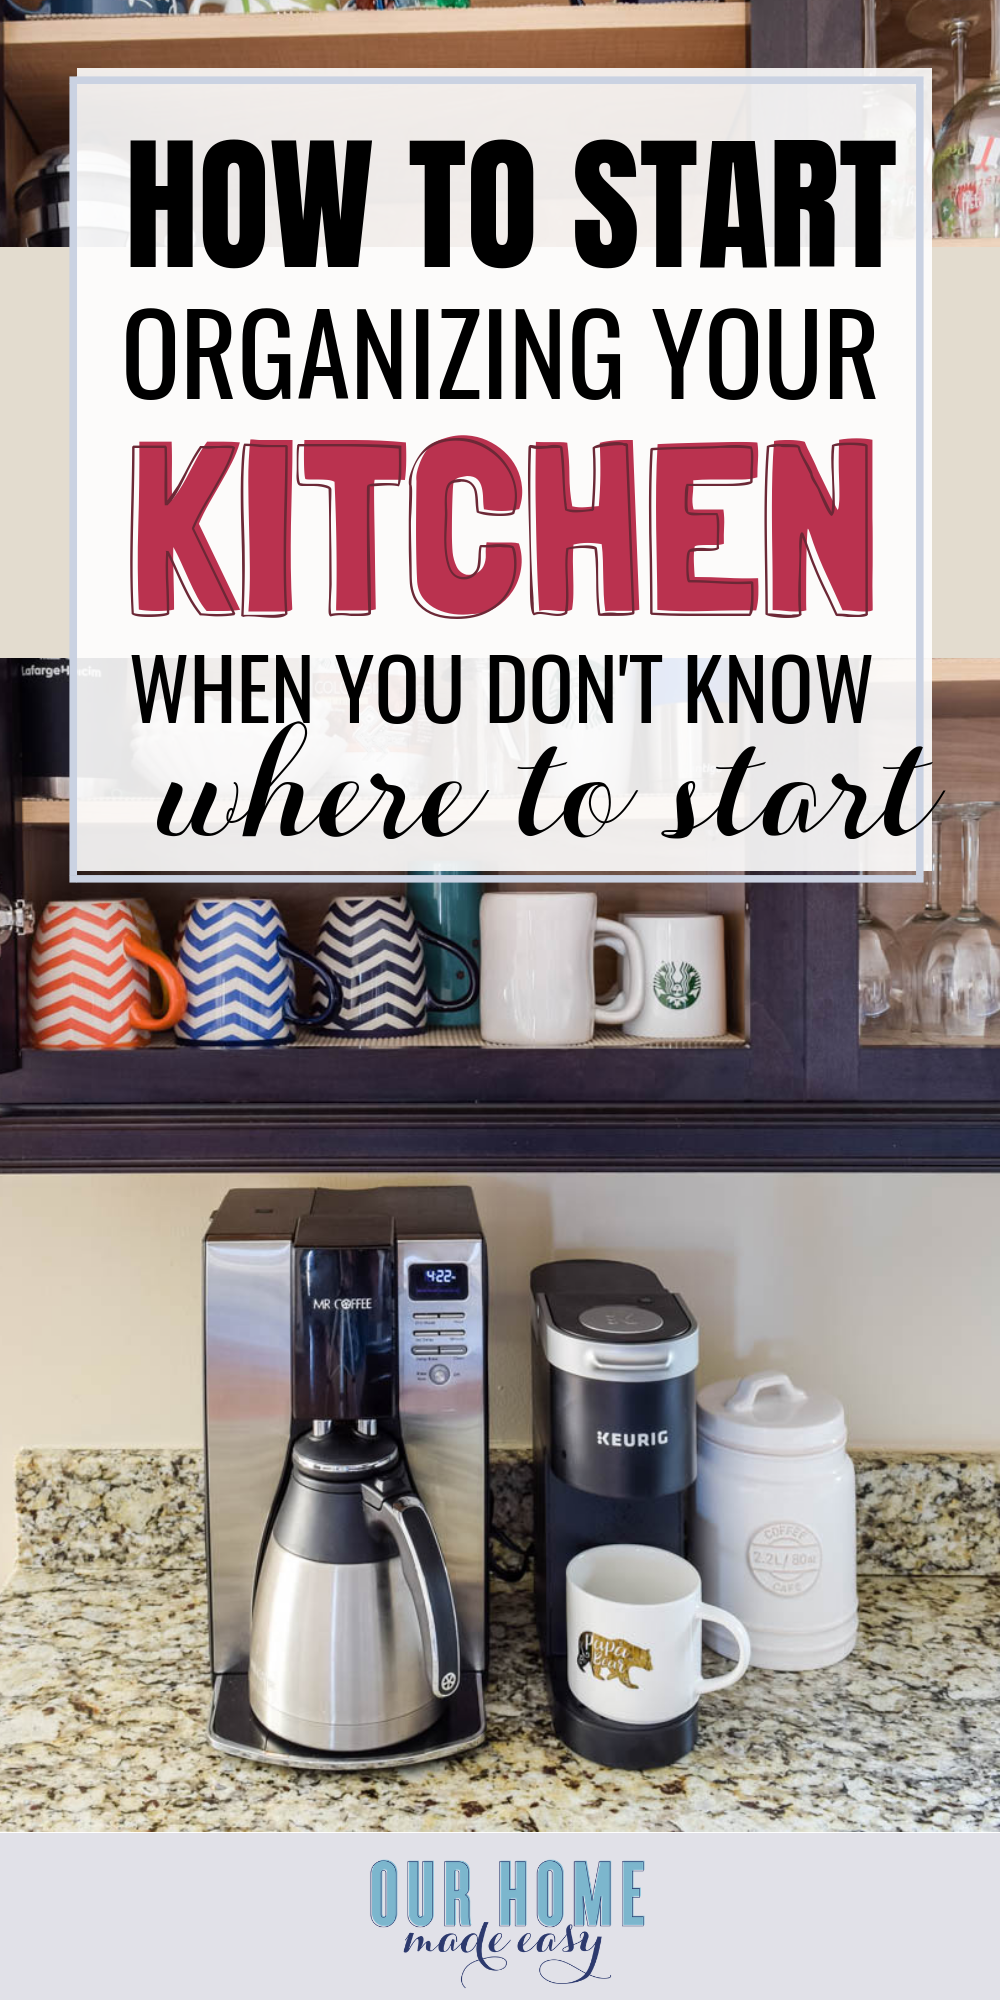 How to start organizing your kitchen when you don't know where to start